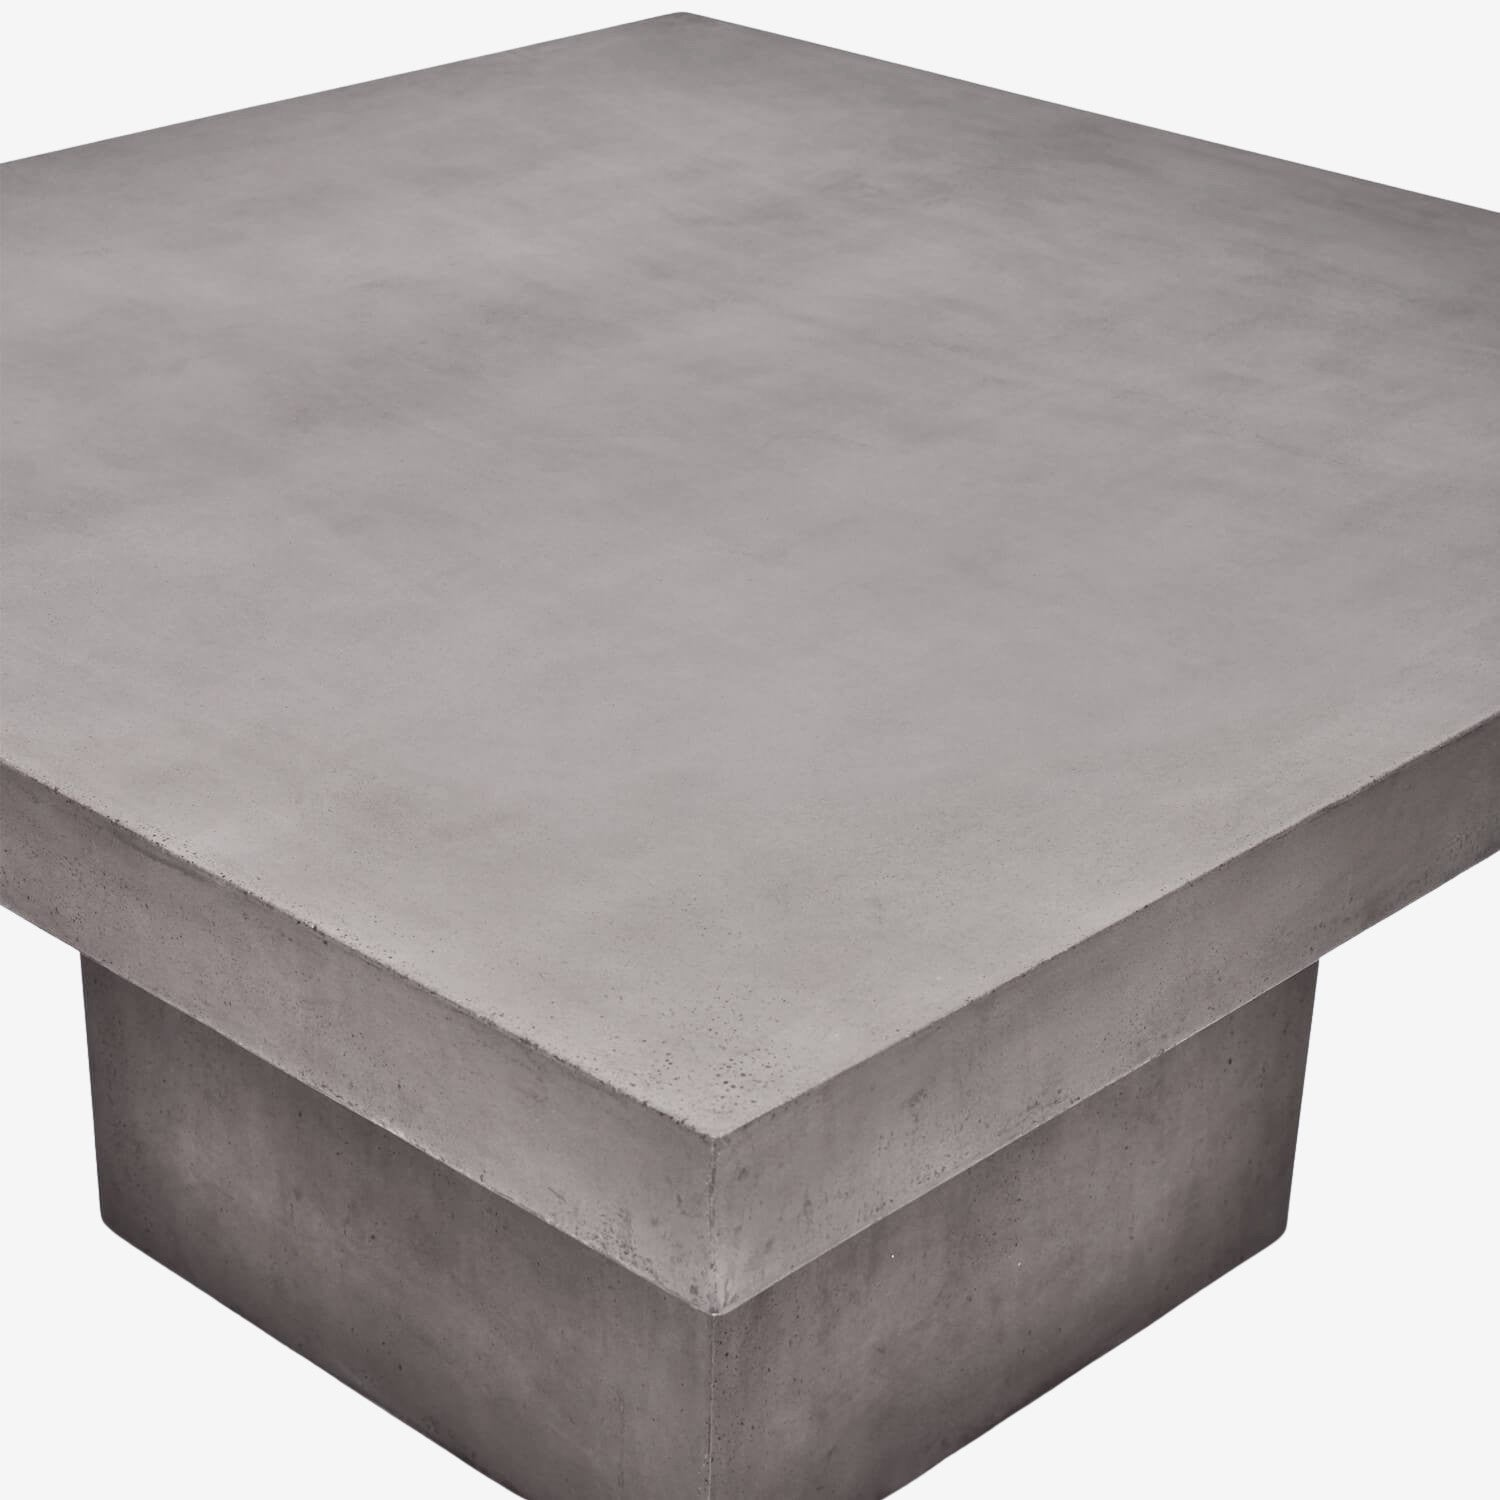 Monolithic Square Cement Table 5'